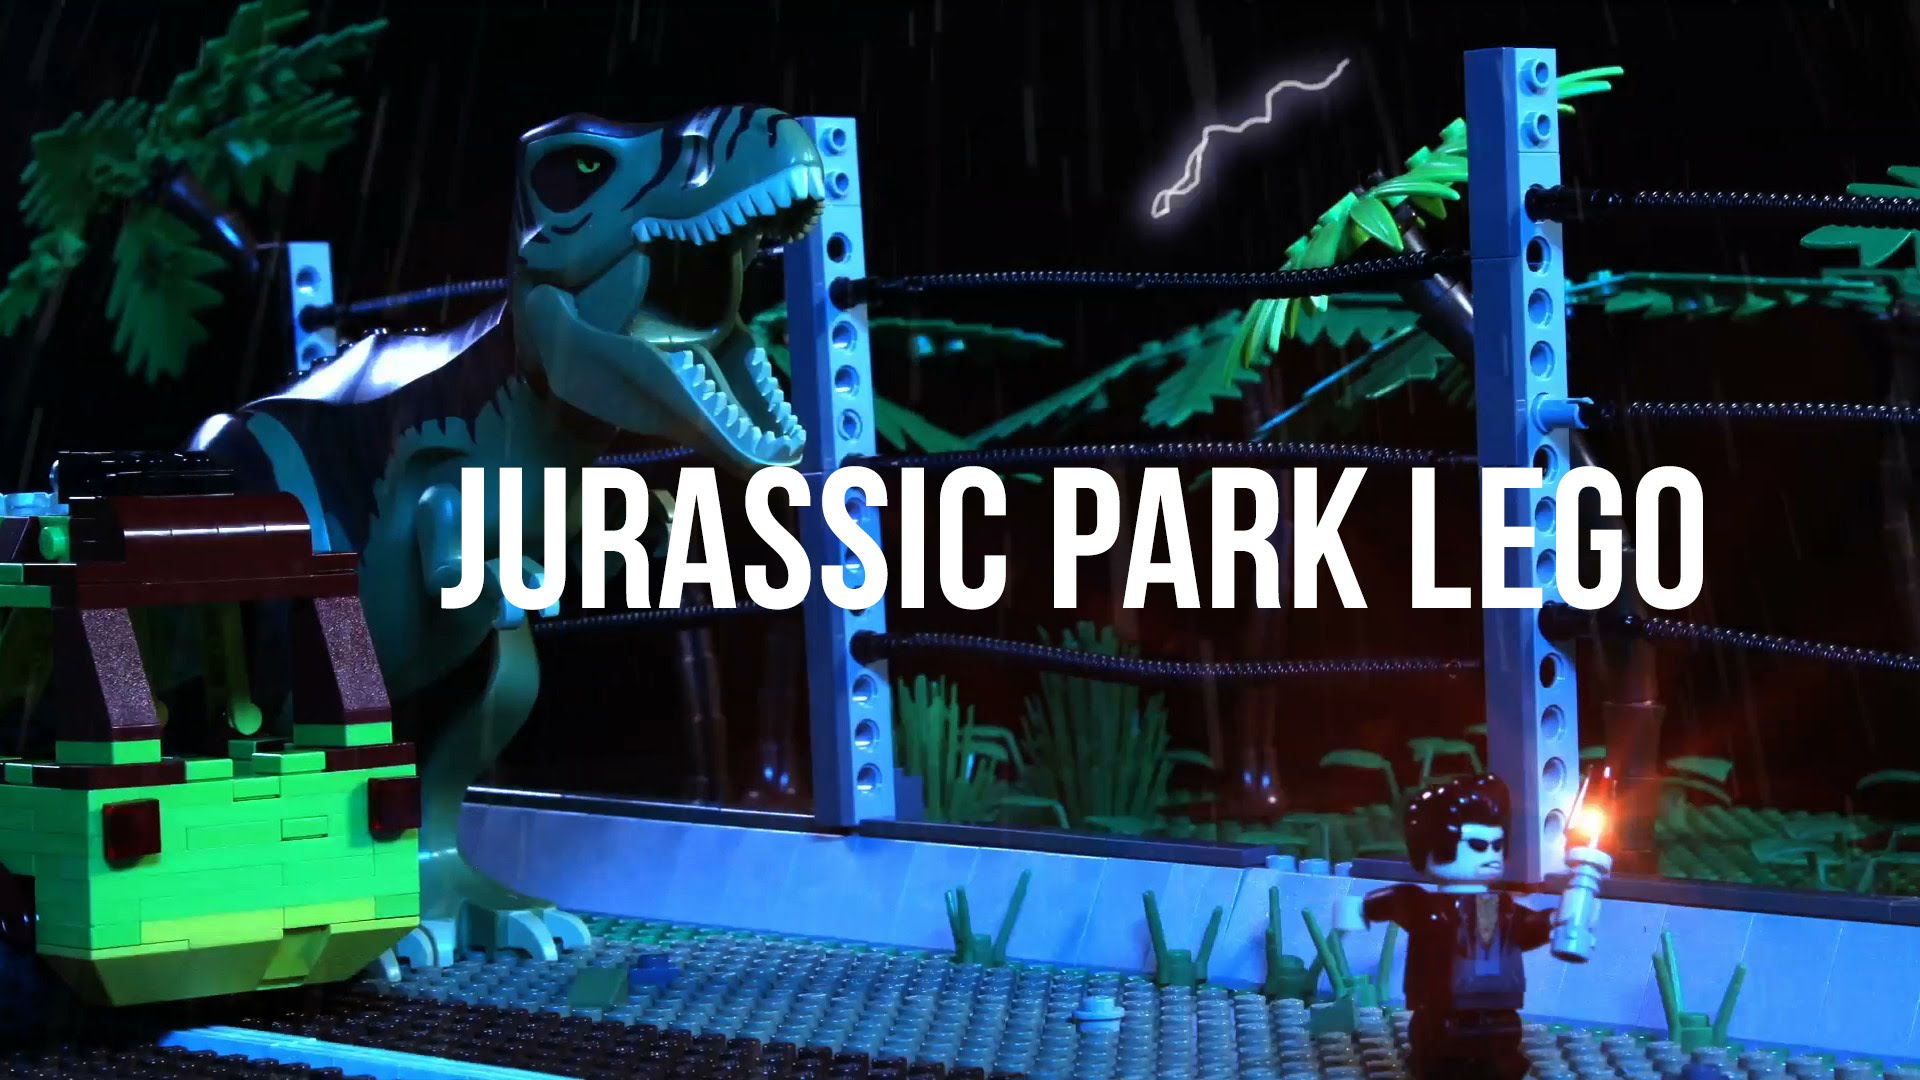 Lego jurassic park the motion picture boing boing - Jurasic park lego ...